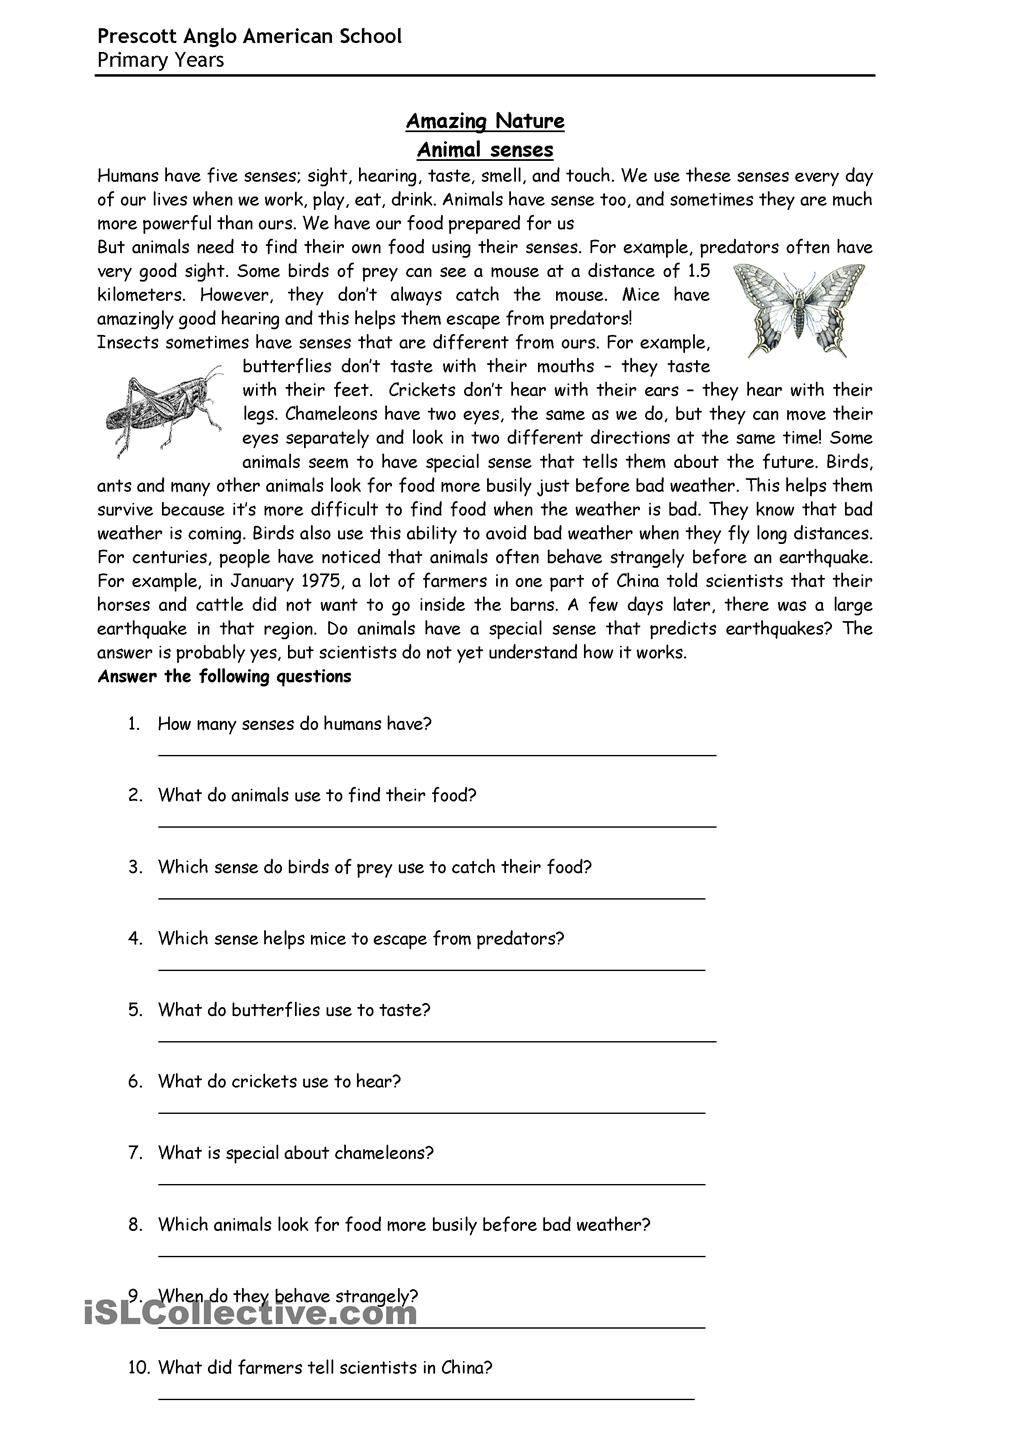 medium resolution of Animal senses   Reading comprehension worksheets